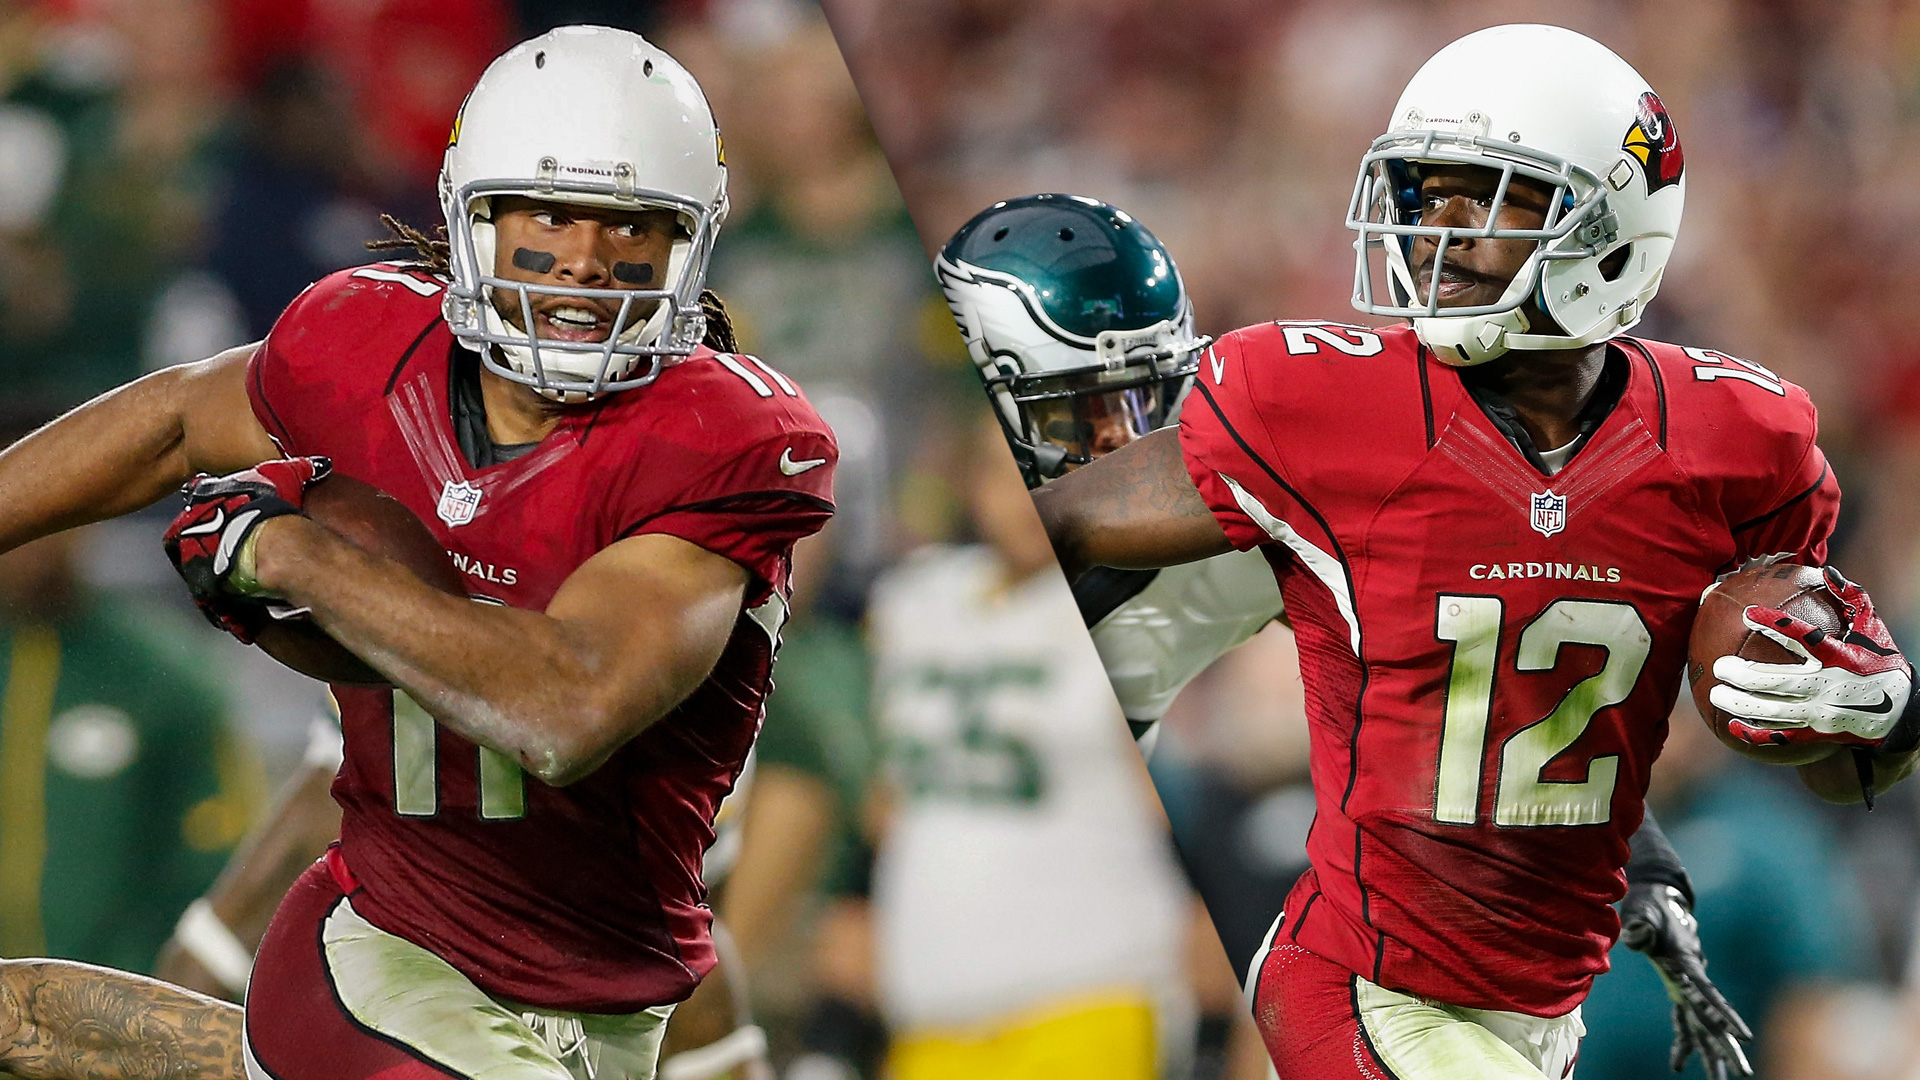 Split-larry-fitzgerald-john-brown-082116-getty-ftrjpg_pwq04aik4zw41r7sbthvfk7ed